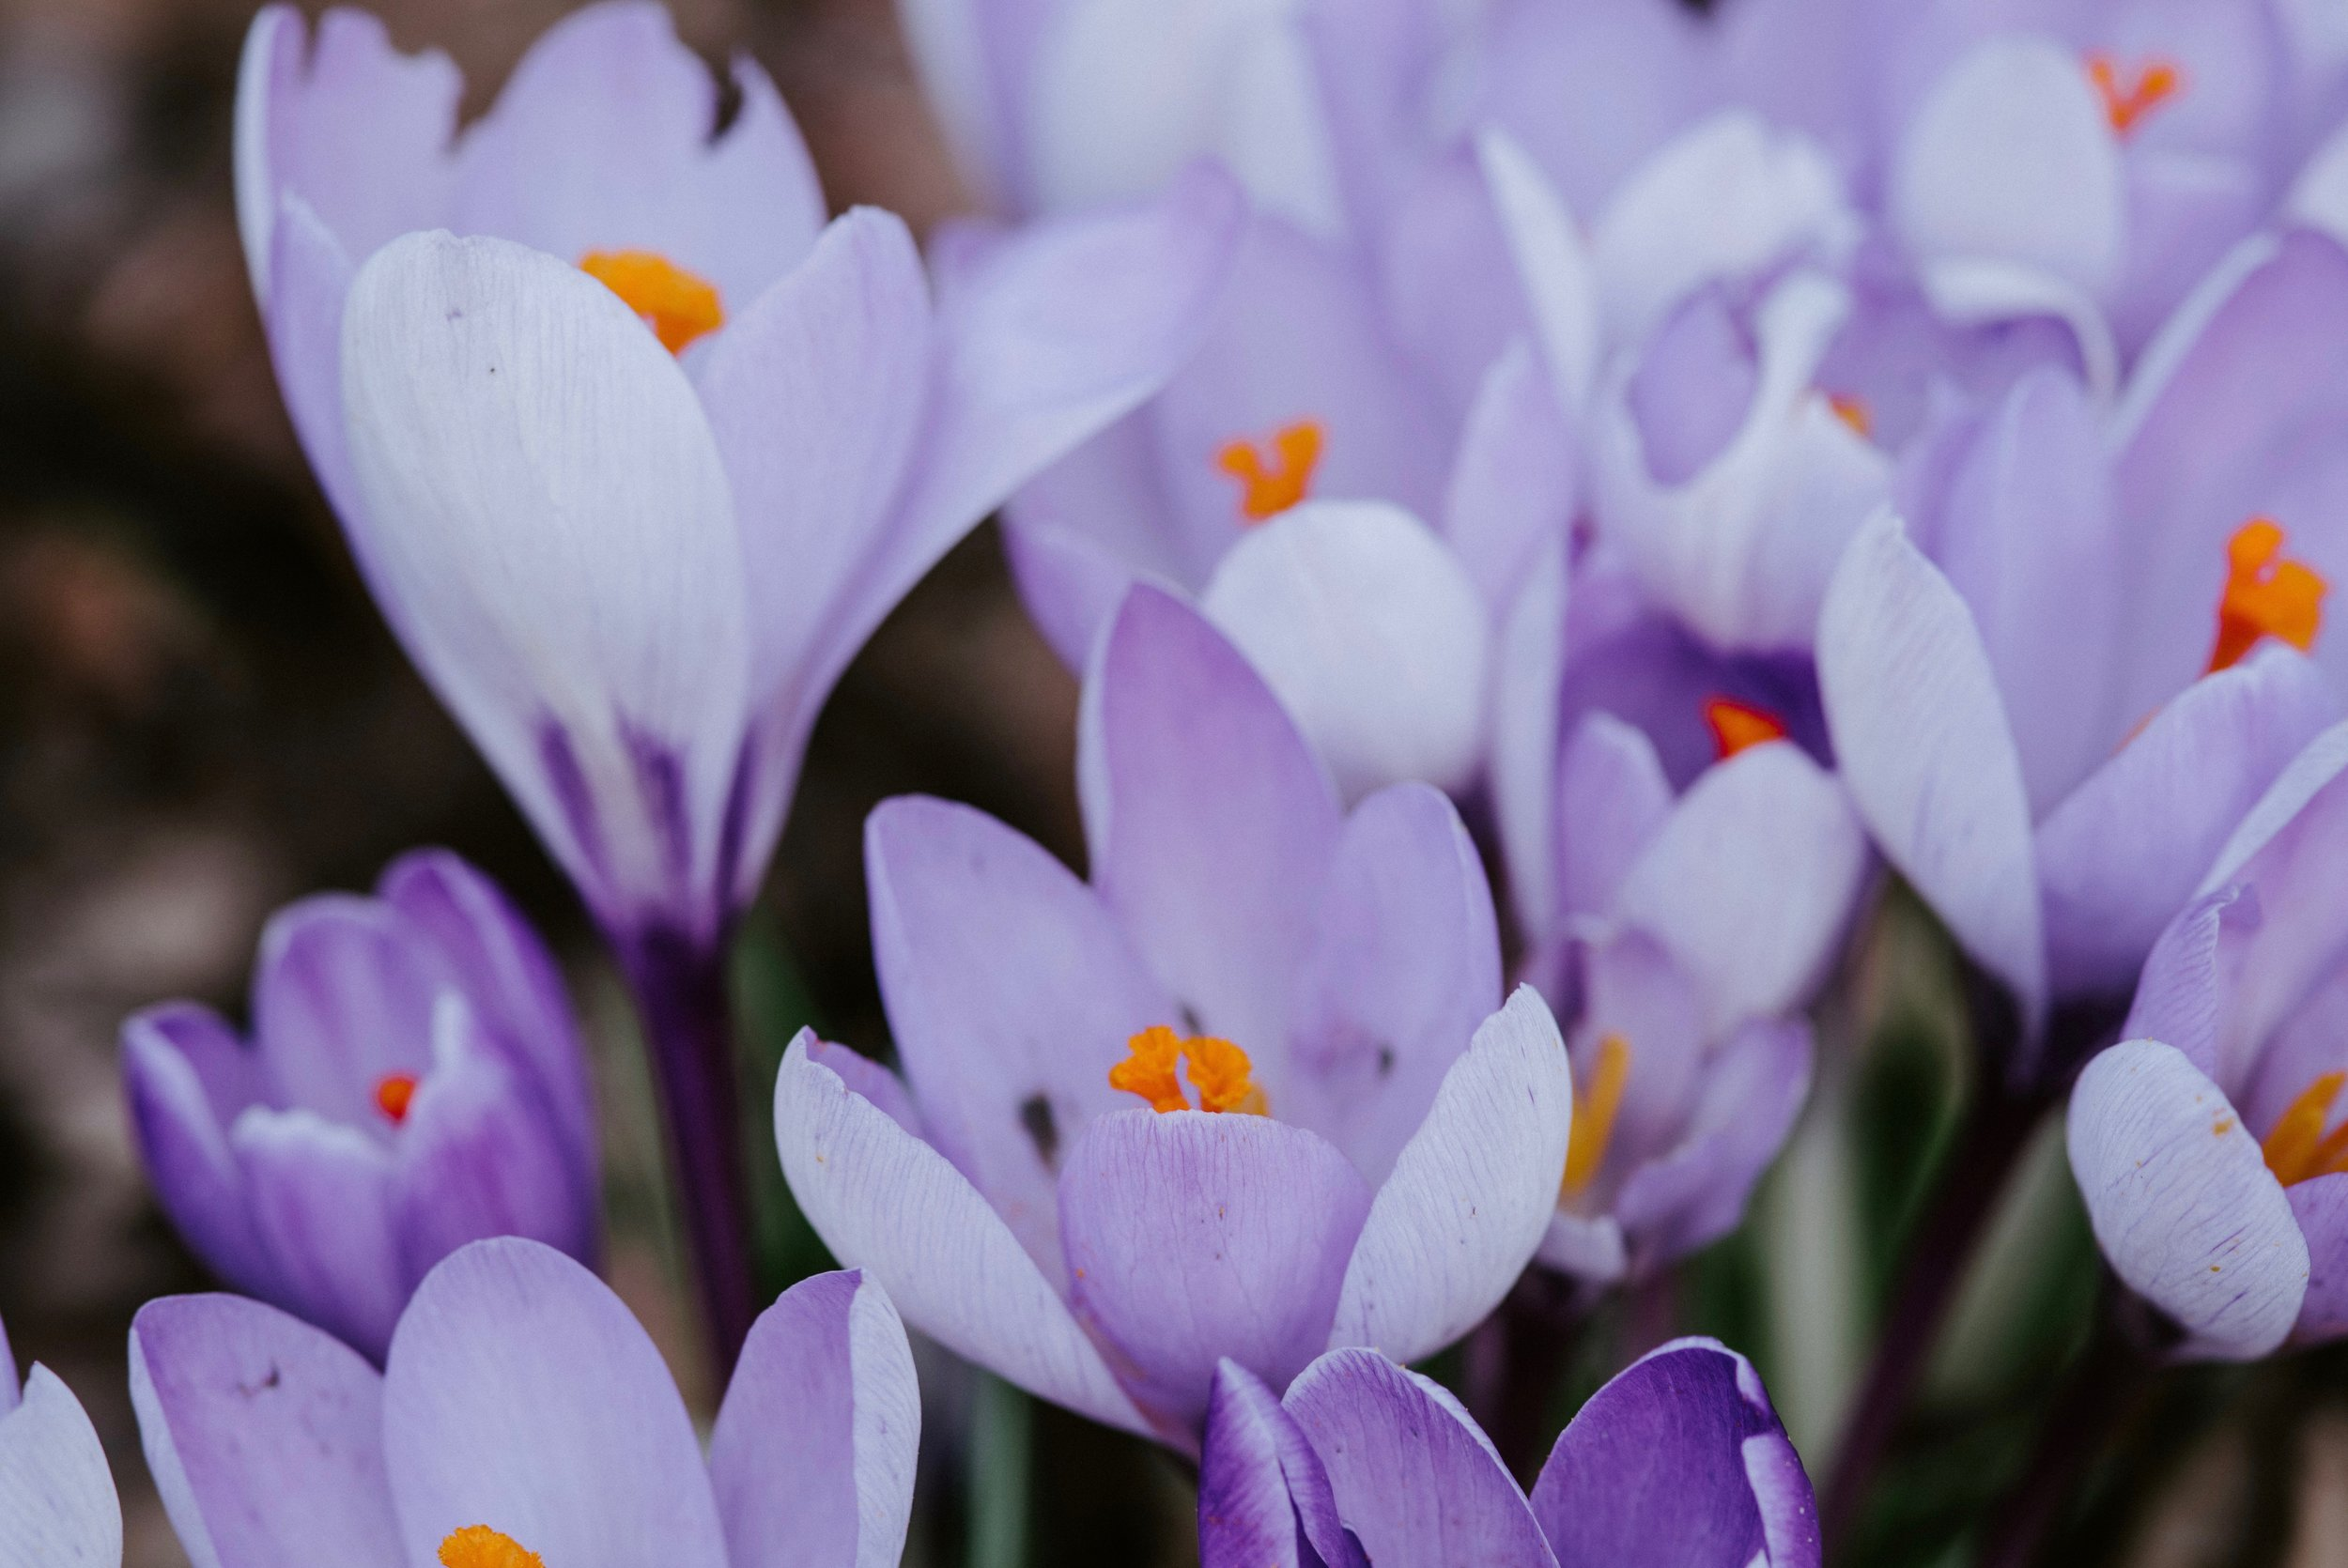 List of spring flowers scotland crocus.jpg